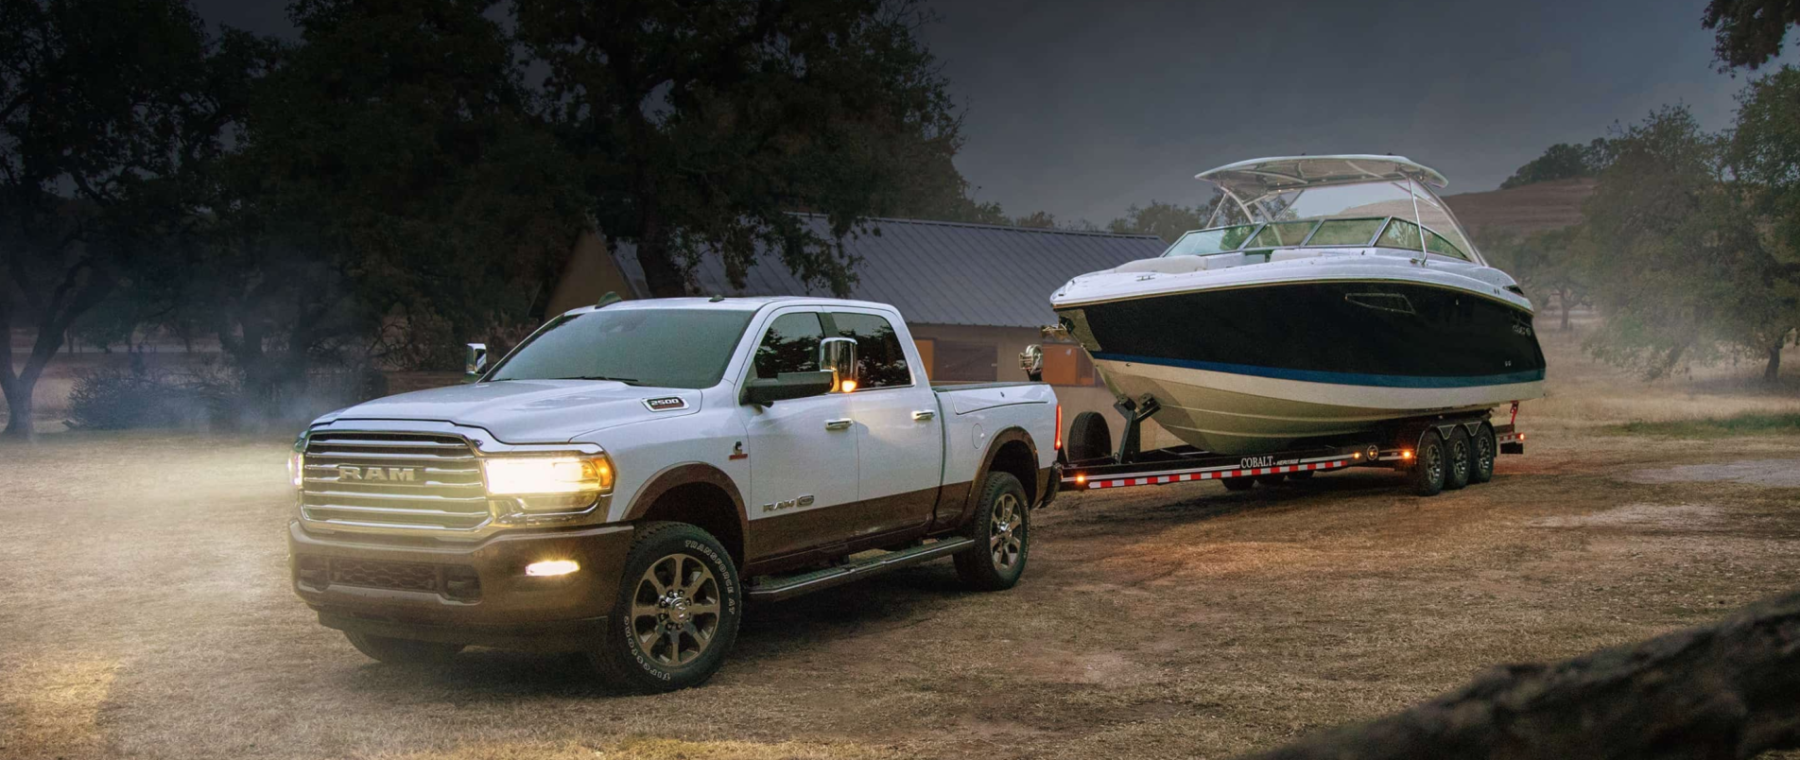 Ram towing a boat